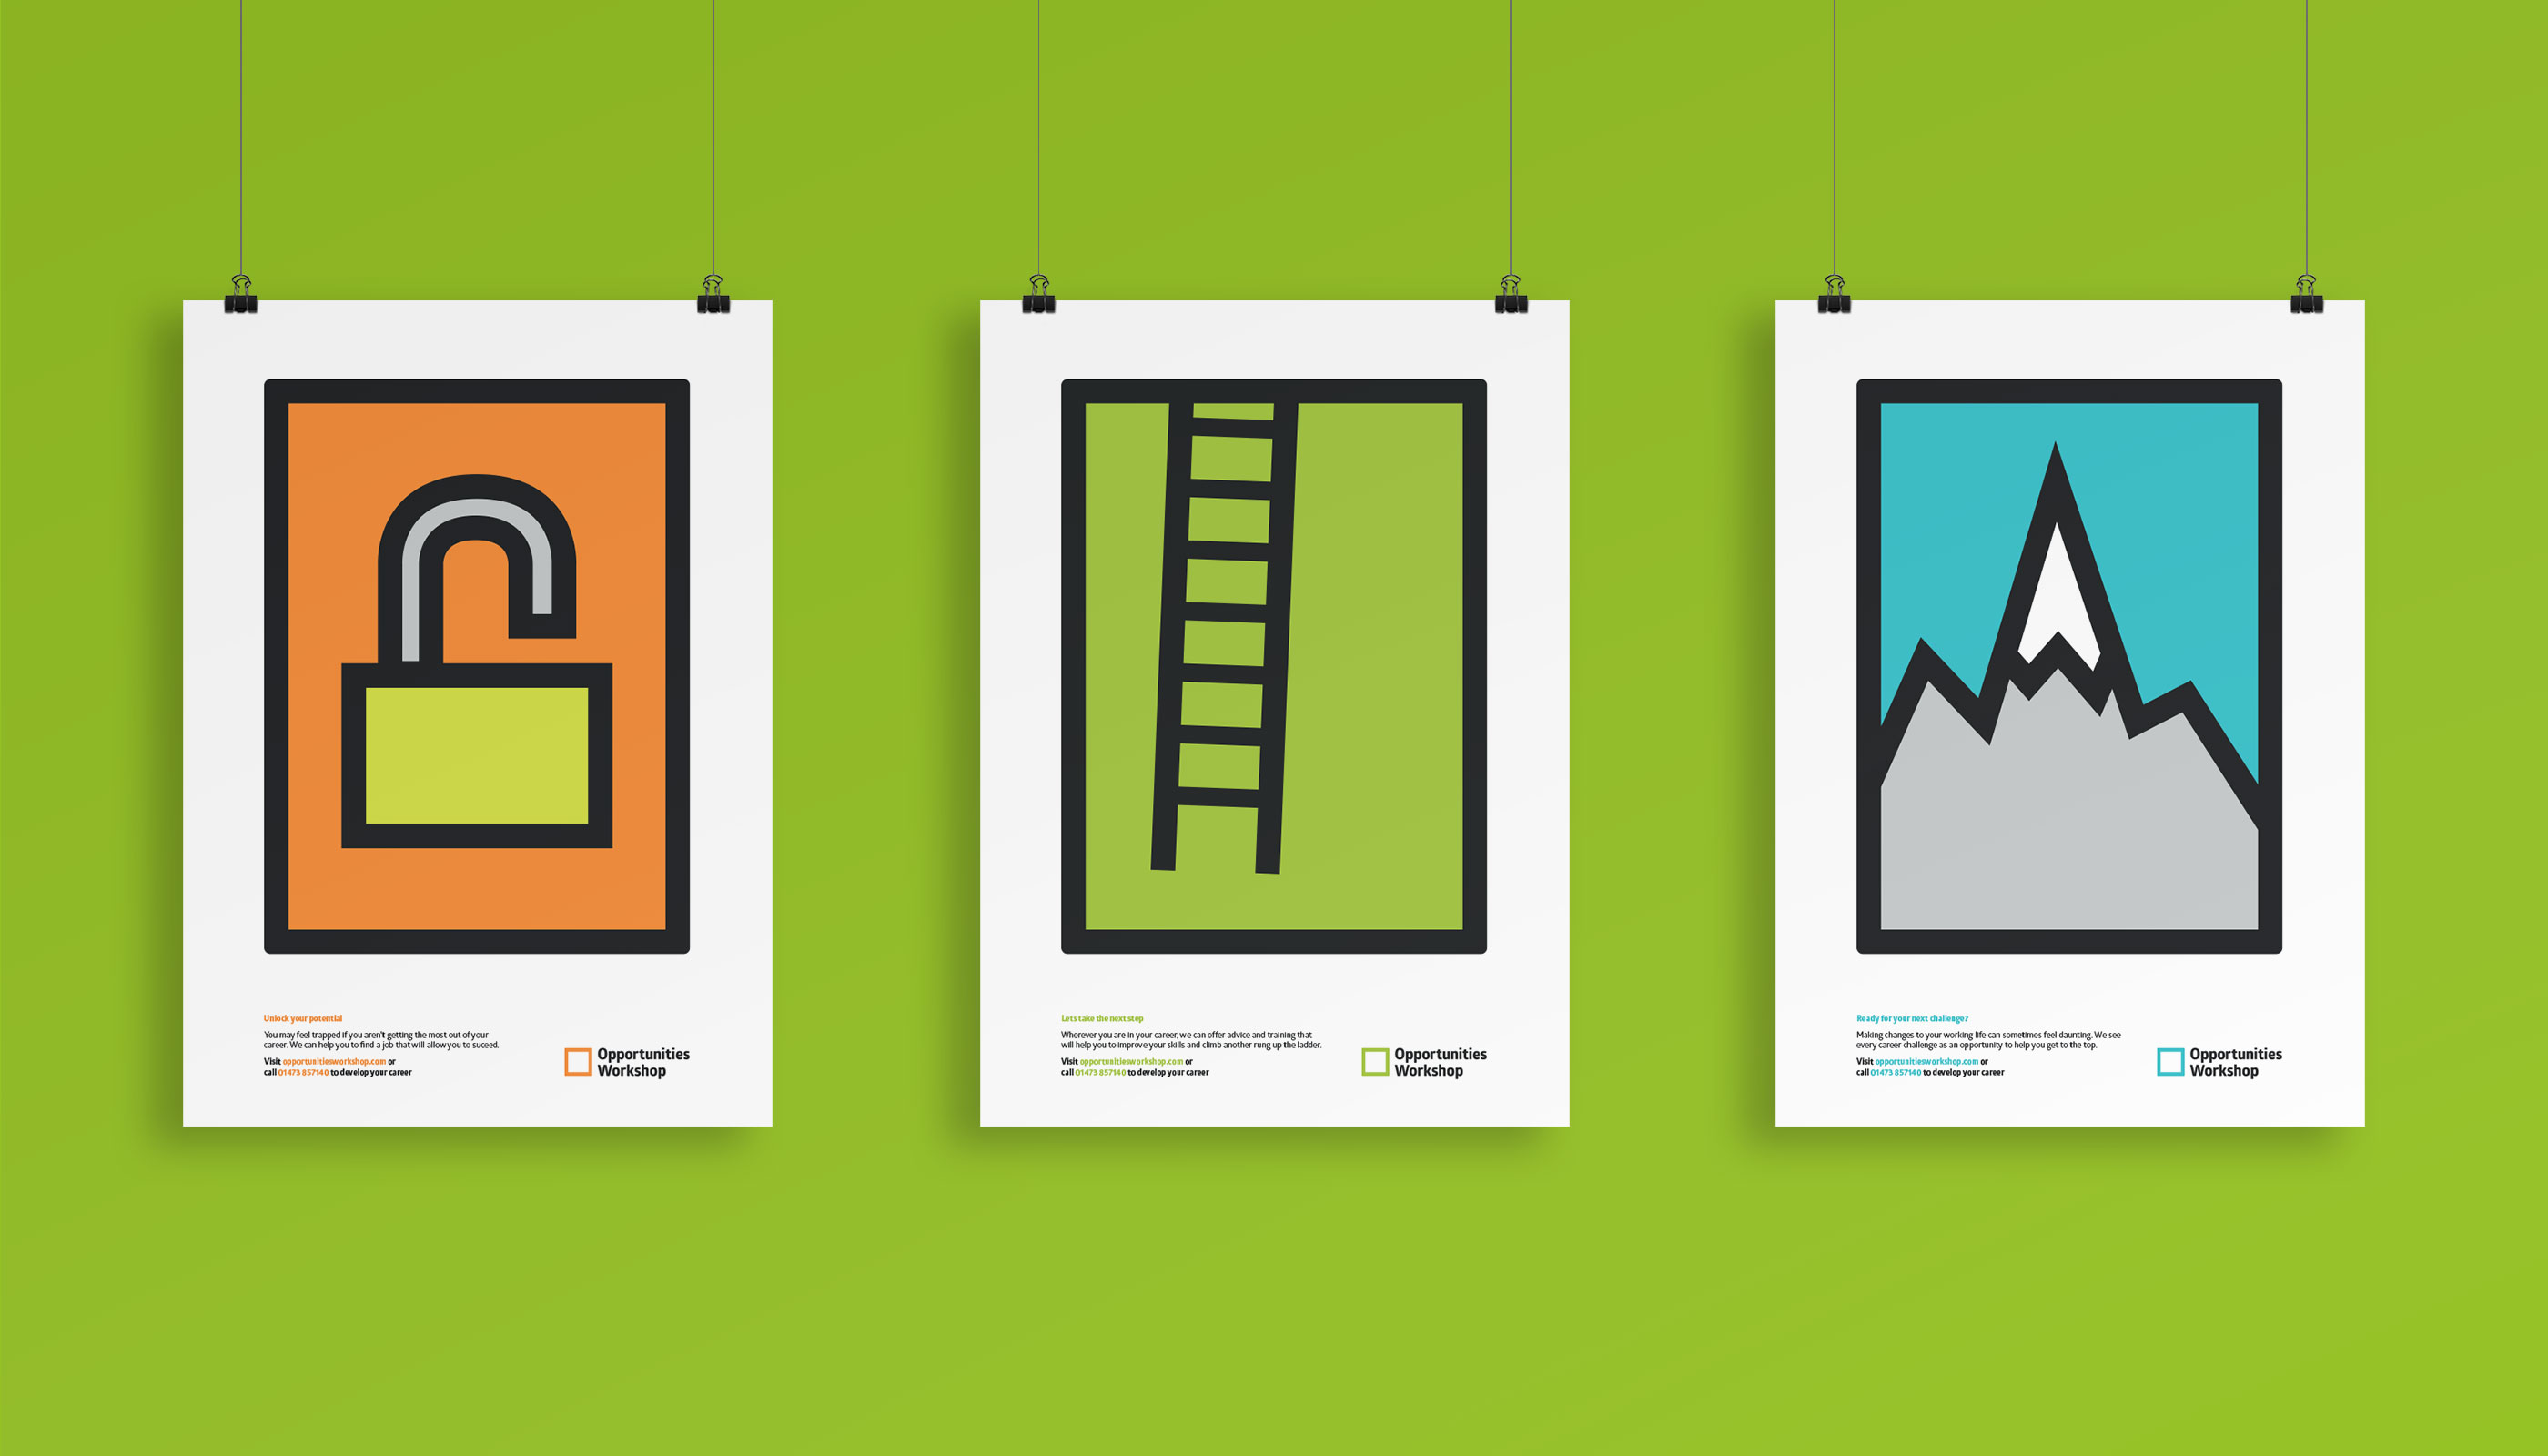 Poster design and print for Opportunities Workshop in Ipswich, Suffolk.